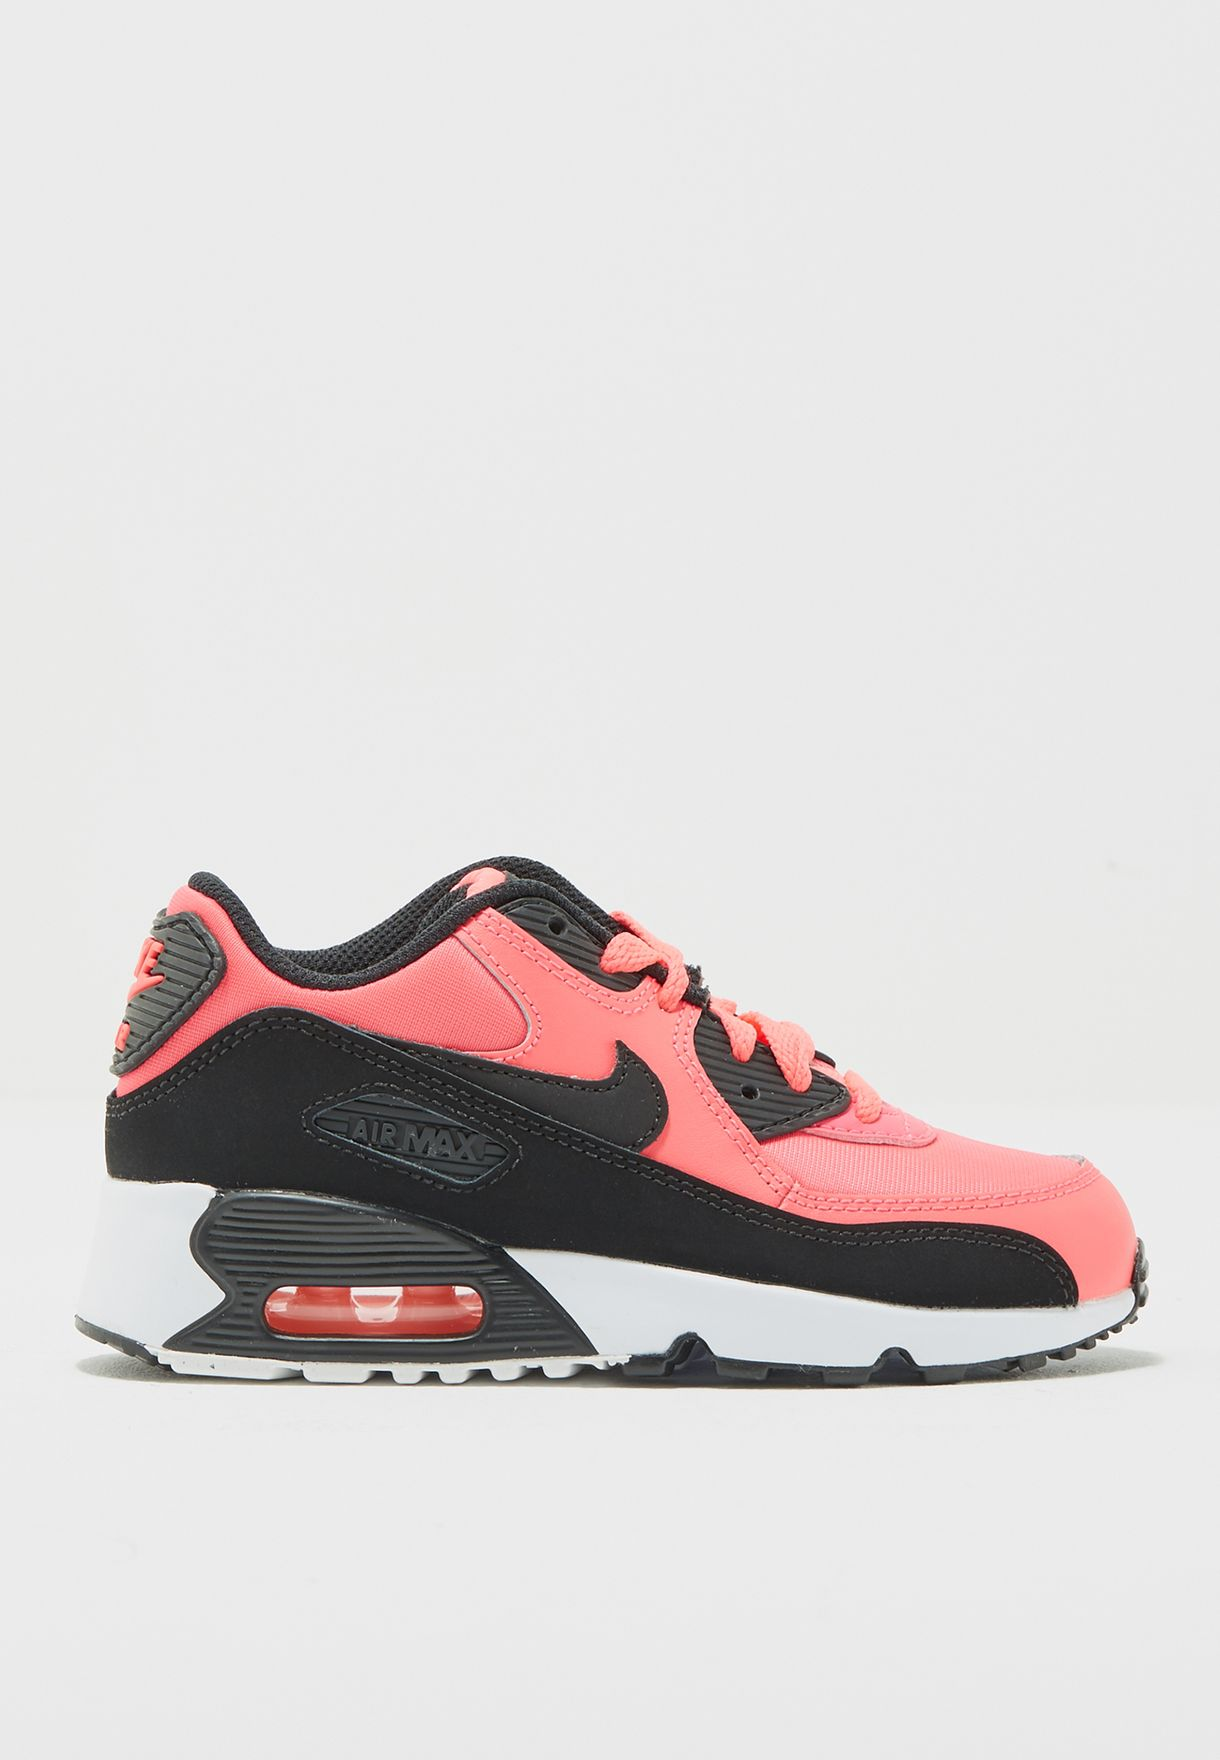 58be5324c7 Shop Nike multicolor Air Max 90 Mesh Kids 833341-600 for Kids in ...